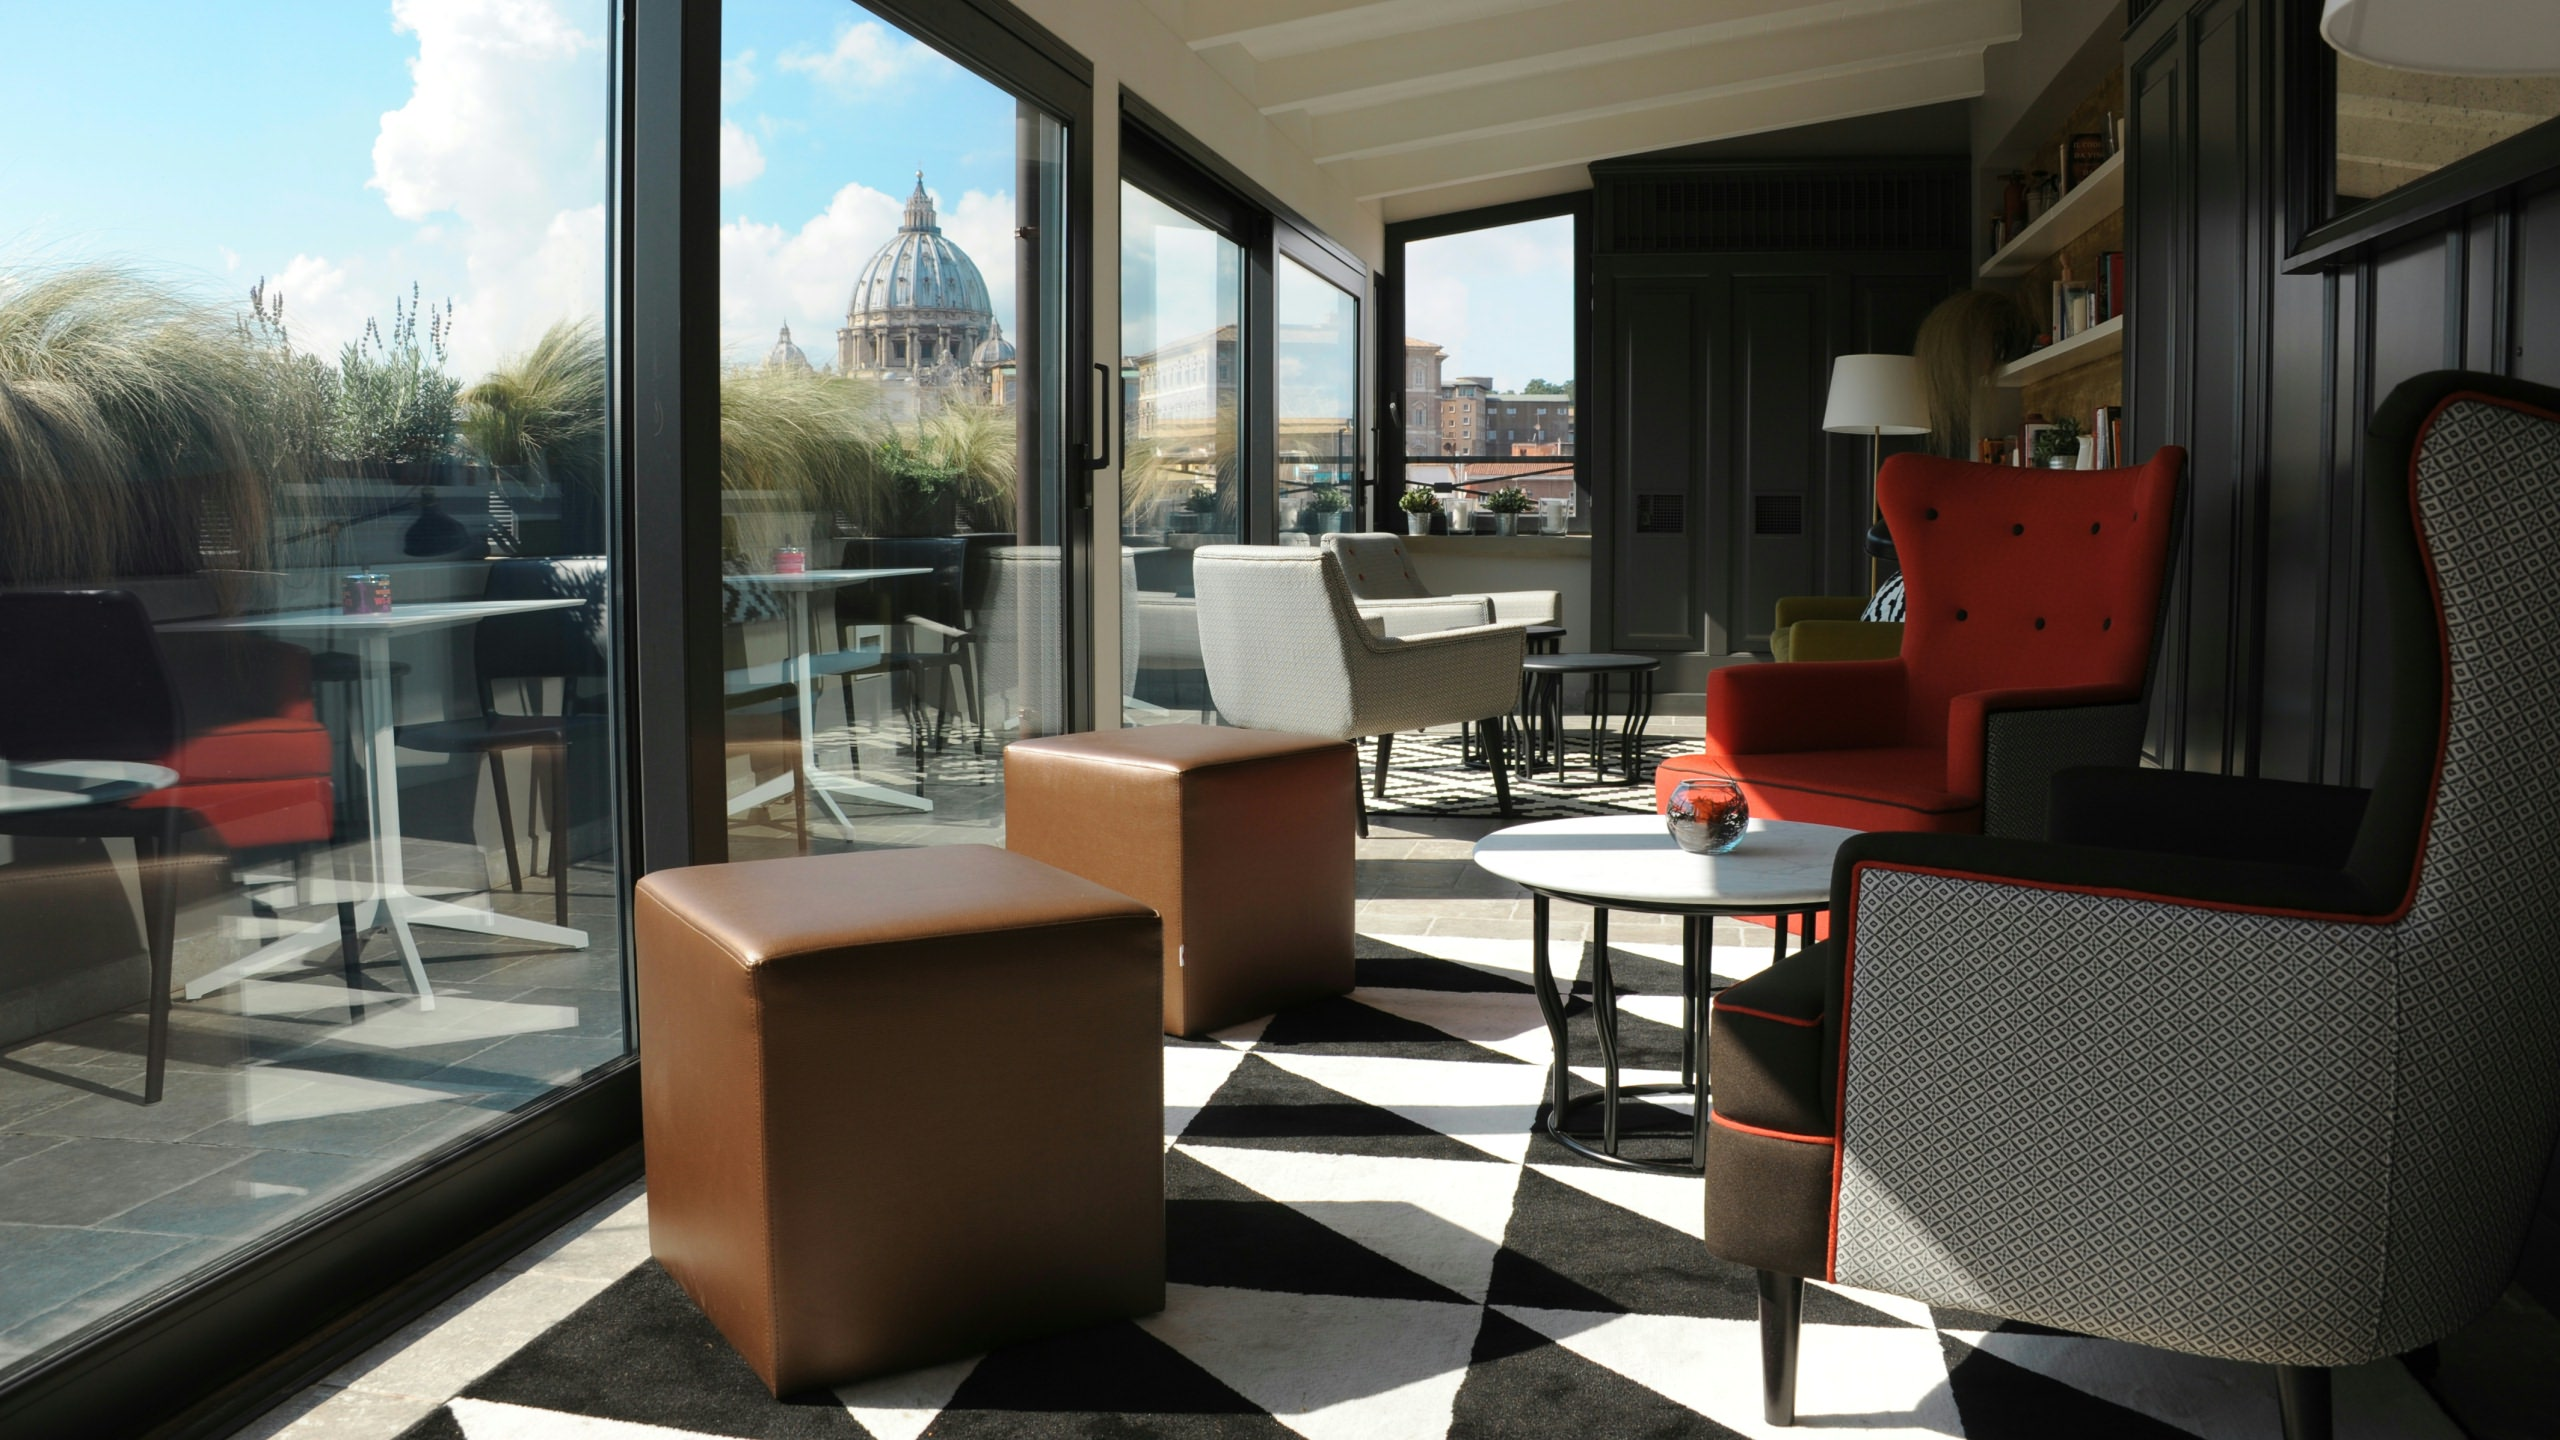 residence-trianon-rome-terrace-1404